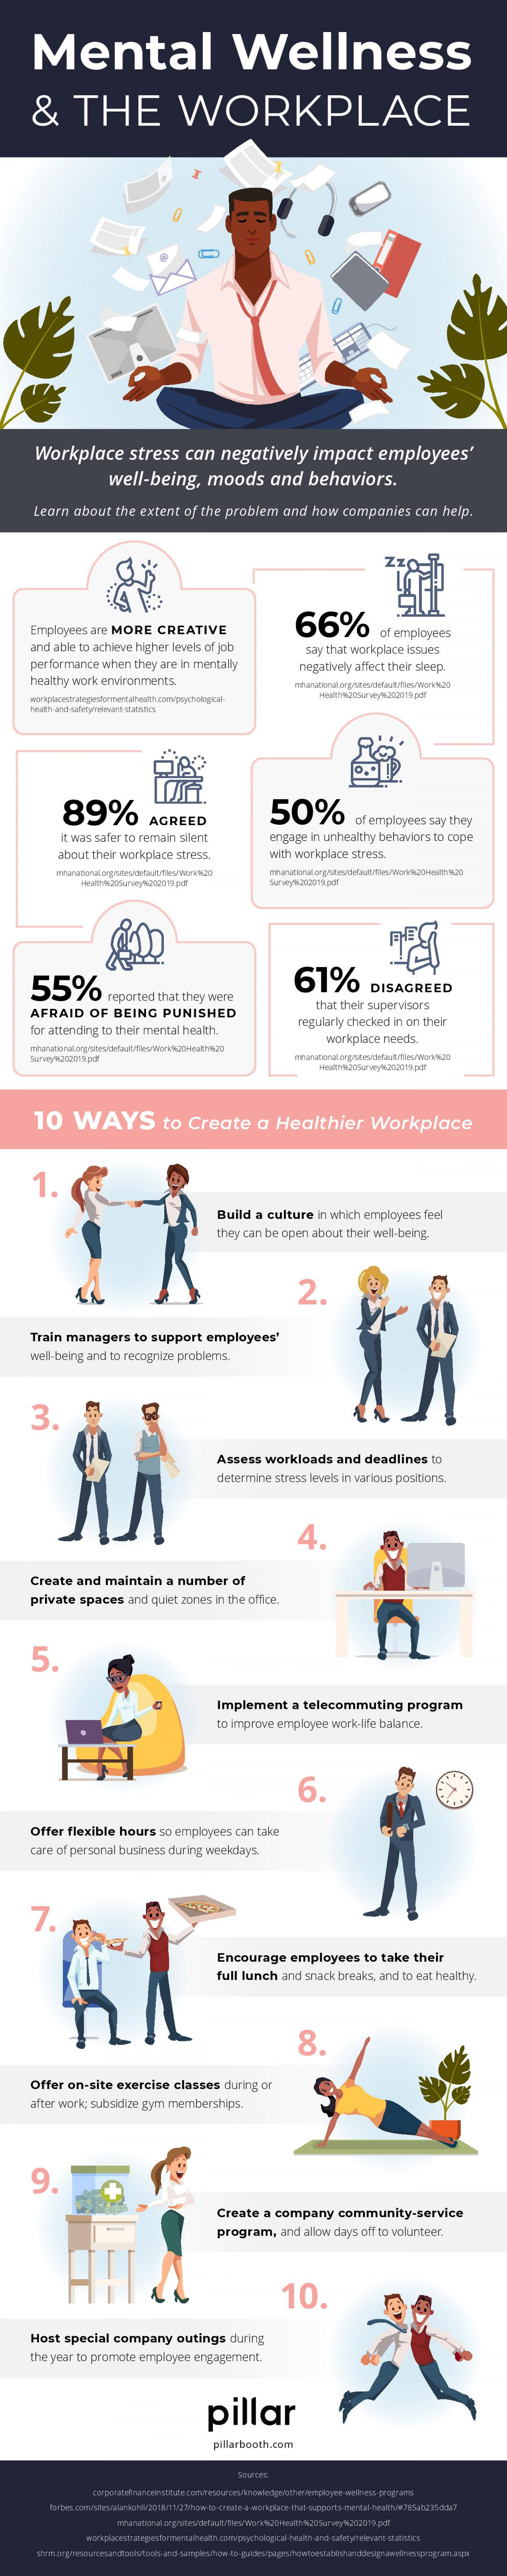 Mental Wellness and The Workplace Infographic